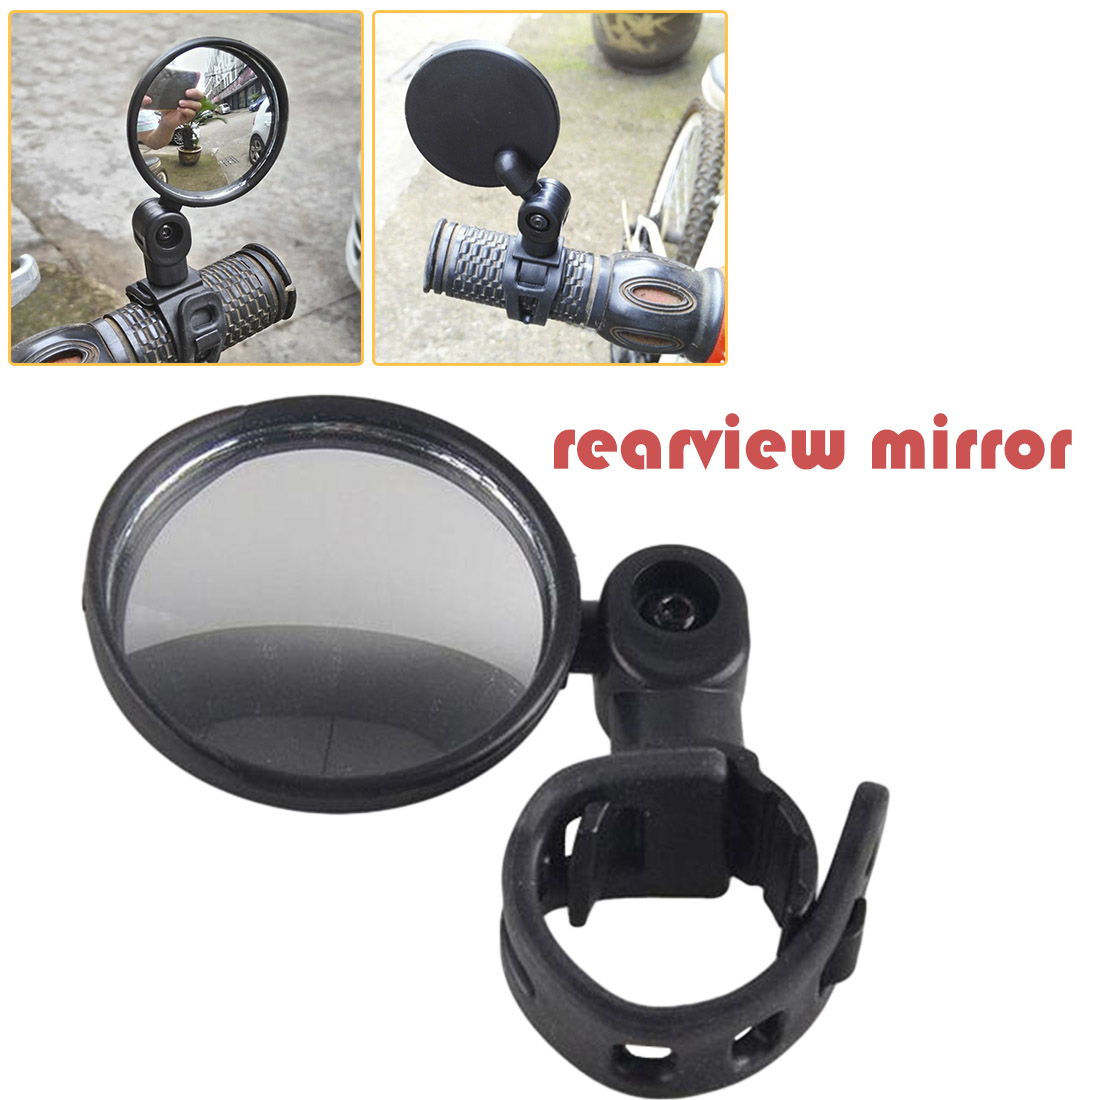 2 x 360° Rotate Cycling Bicycle Bike Handlebar Rear View Rearview Mirror Safety